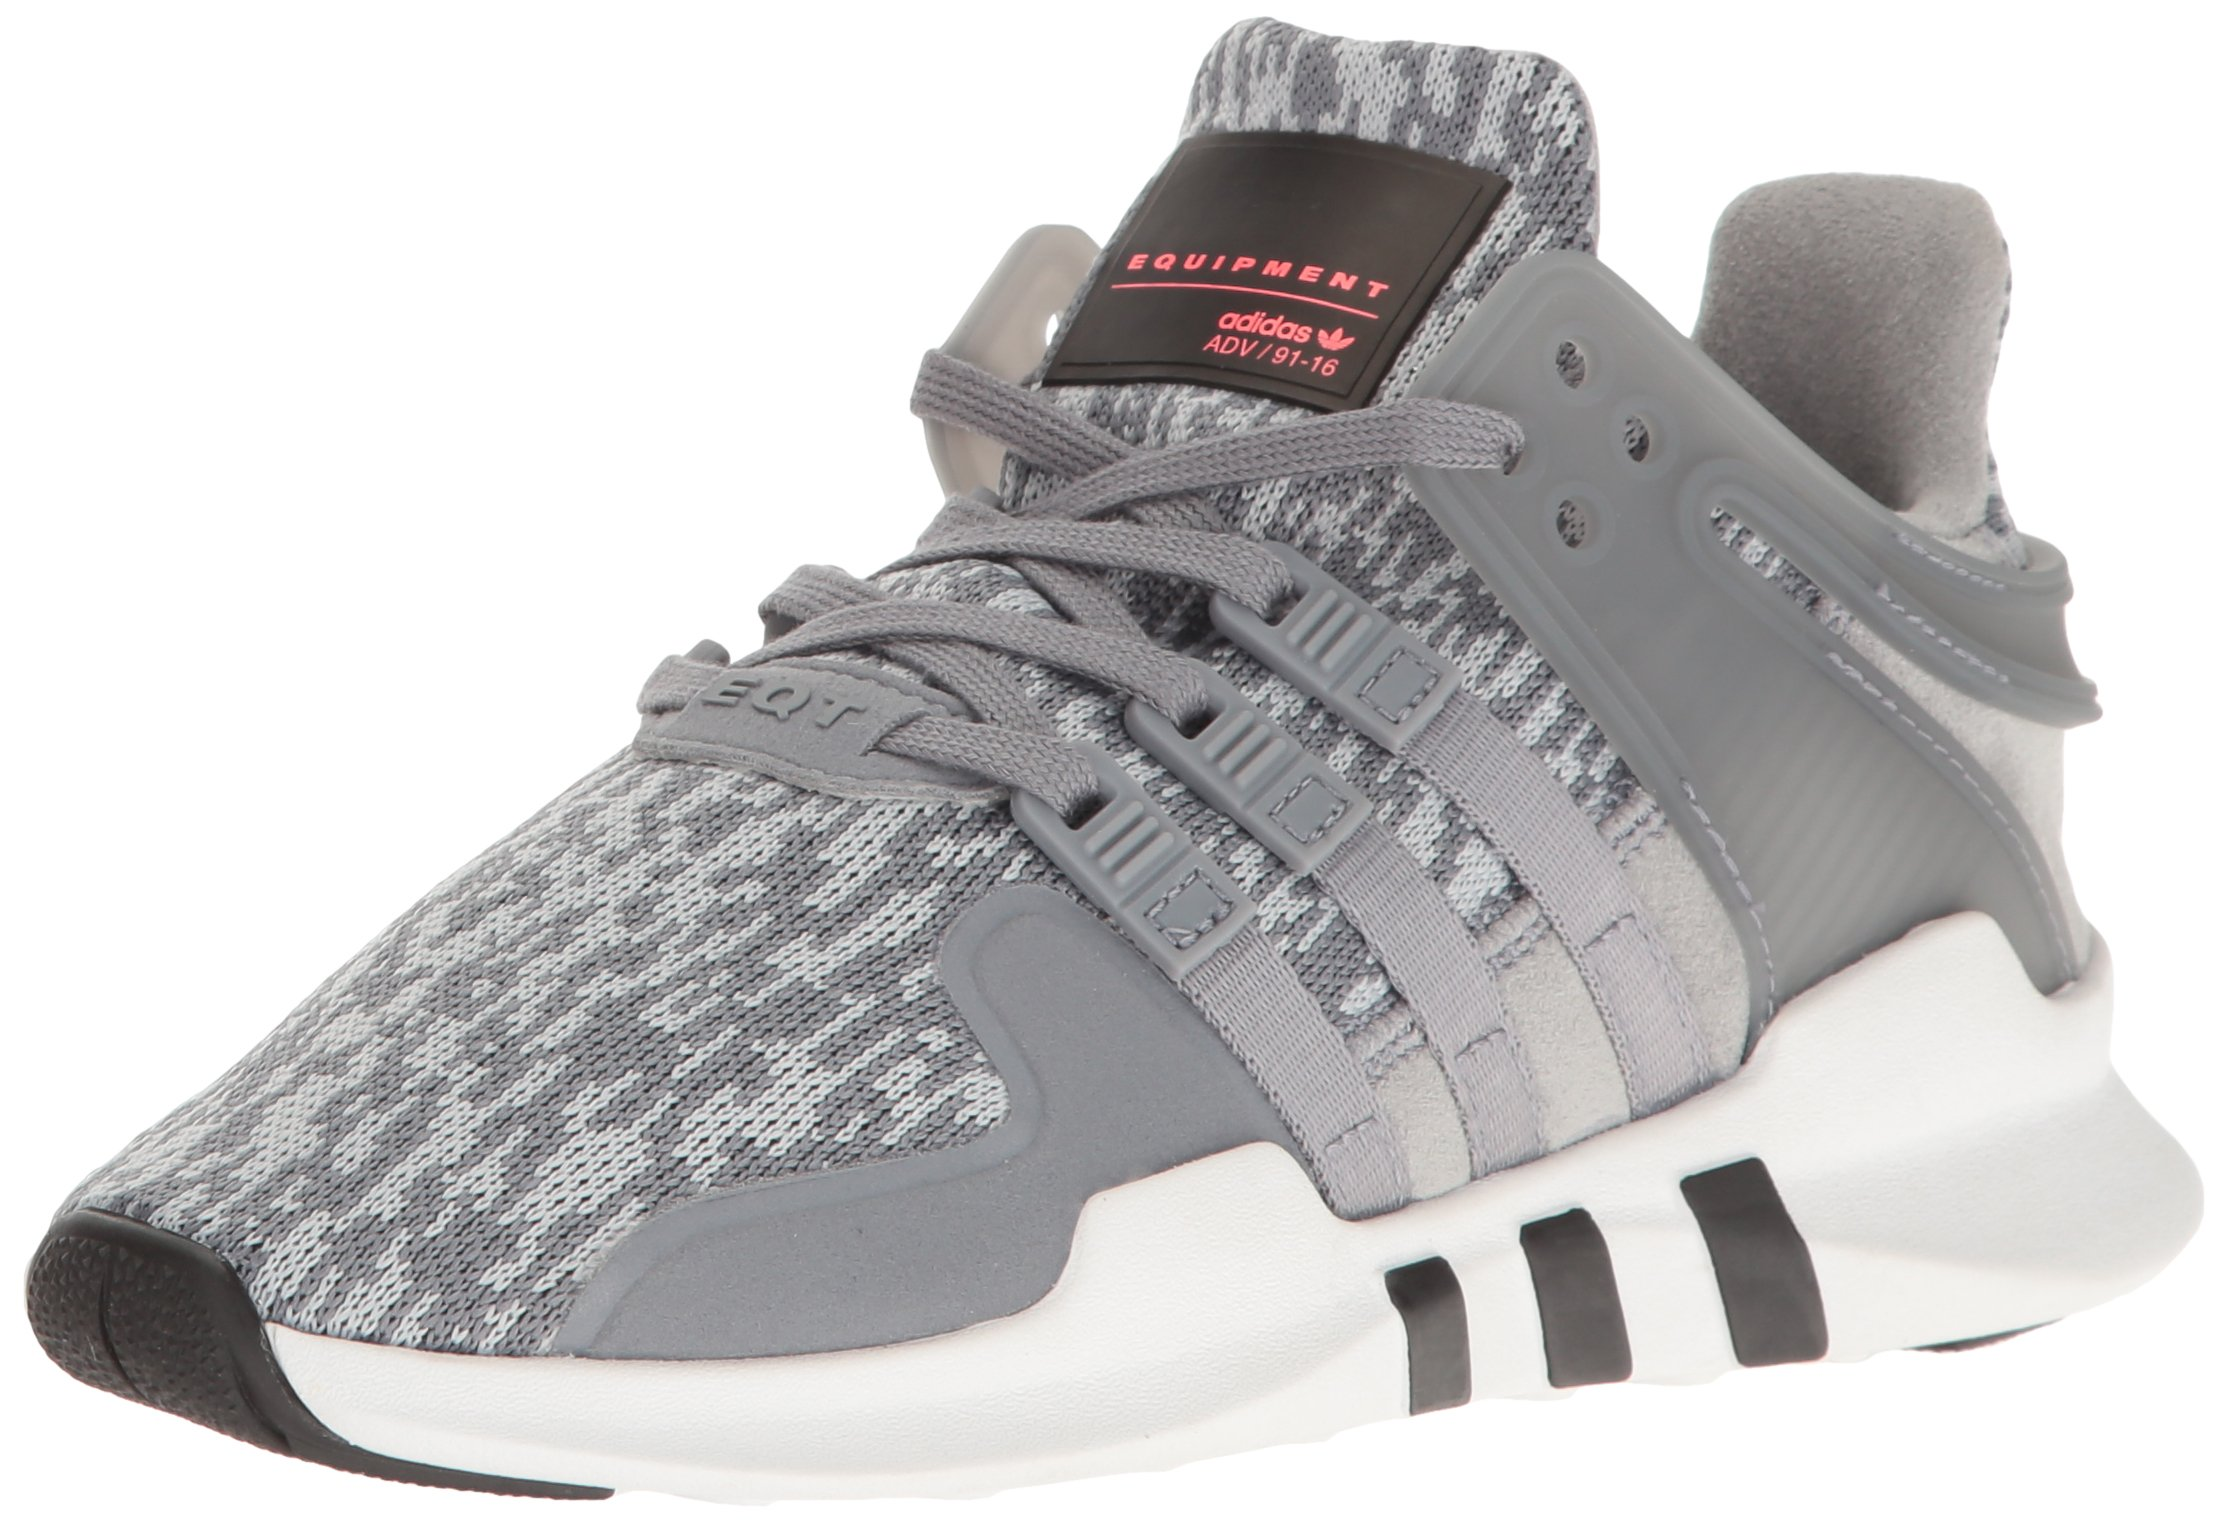 adidas Originals Boys' EQT Support ADV J Running Shoe, Tech Grey/White, 5.5 M US Big Kid by adidas Originals (Image #1)